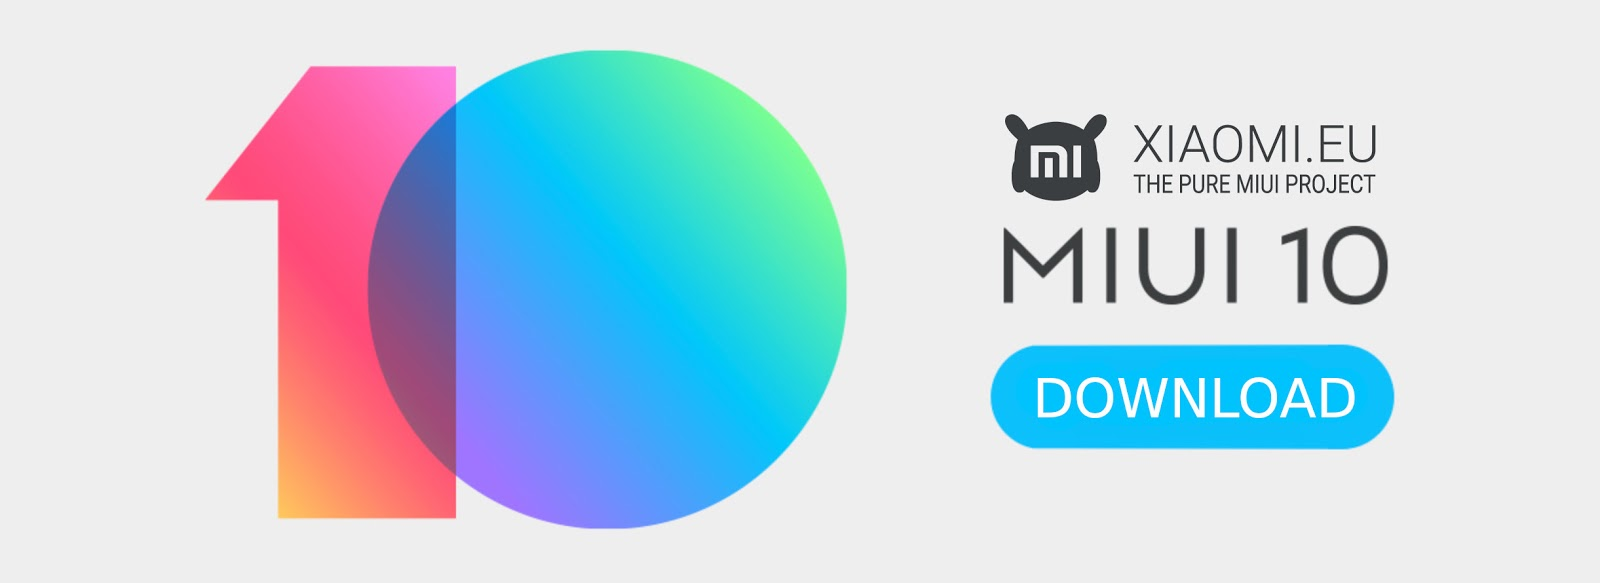 Download latest MIUI 10 4 EU Weekly ROM V9 5 30 for all